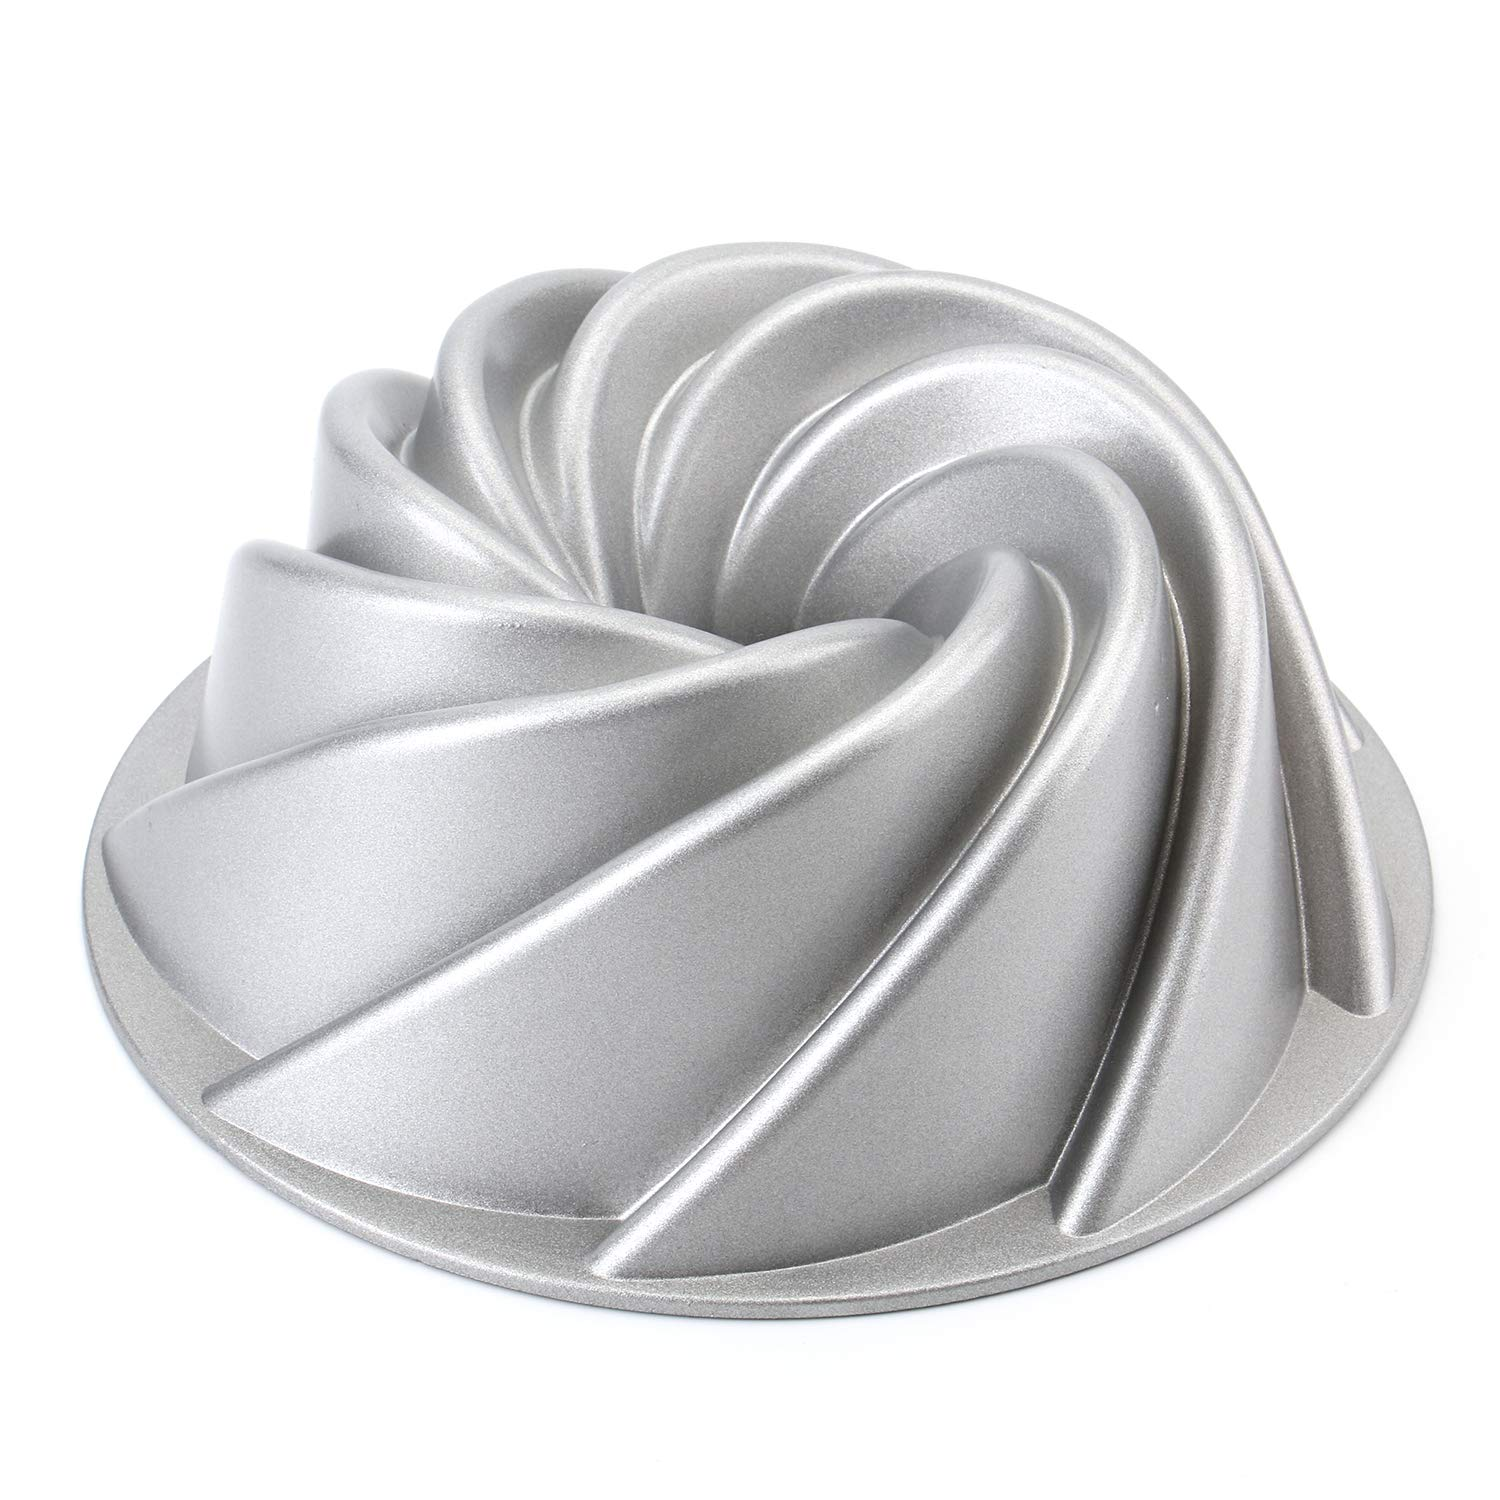 Tosnail 9-Inch Non-Stick Fluted Cake Pan Bundt Cake Pan Specialty and Novelty Cake Pan by Tosnail